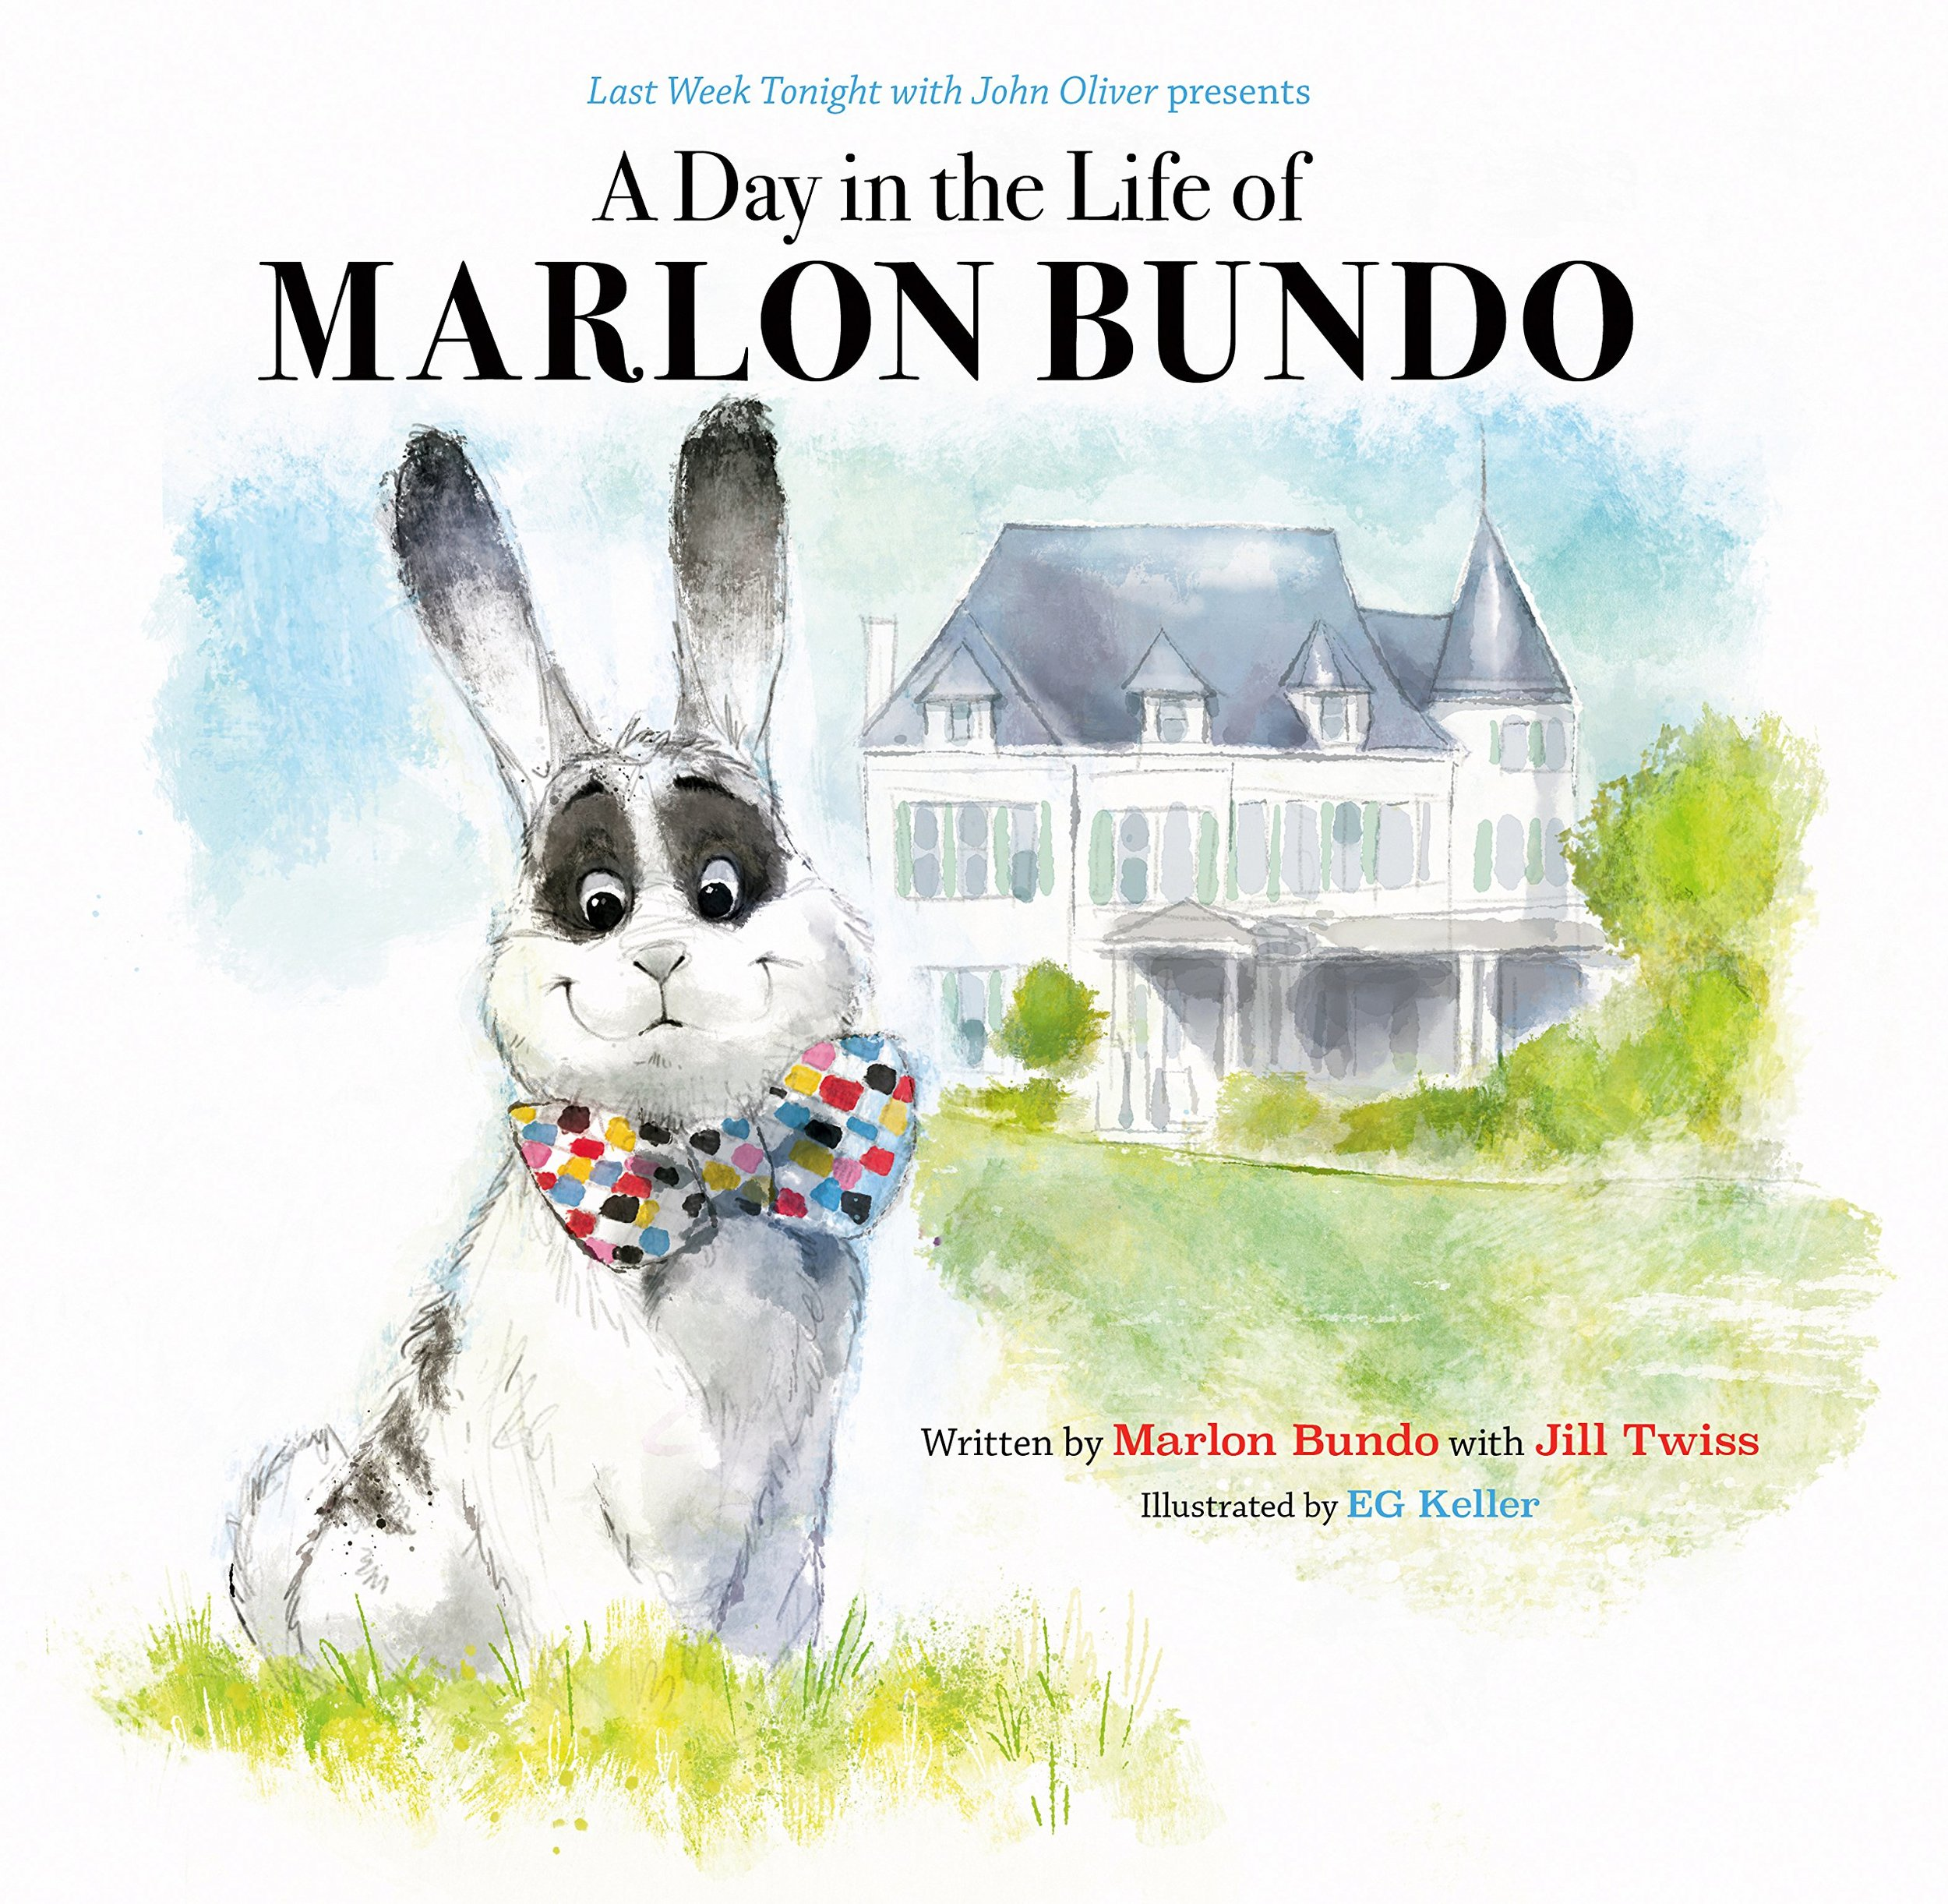 a day in the life of marlon bundoby jill twiss - John Oliver presents a children's picture book about a Very Special boy bunny who falls in love with another boy bunny.With its message of tolerance and advocacy, this charming children's book explores issues of same sex marriage and democracy. Sweet, funny, and beautifully illustrated, this book is dedicated to every bunny who has ever felt different.